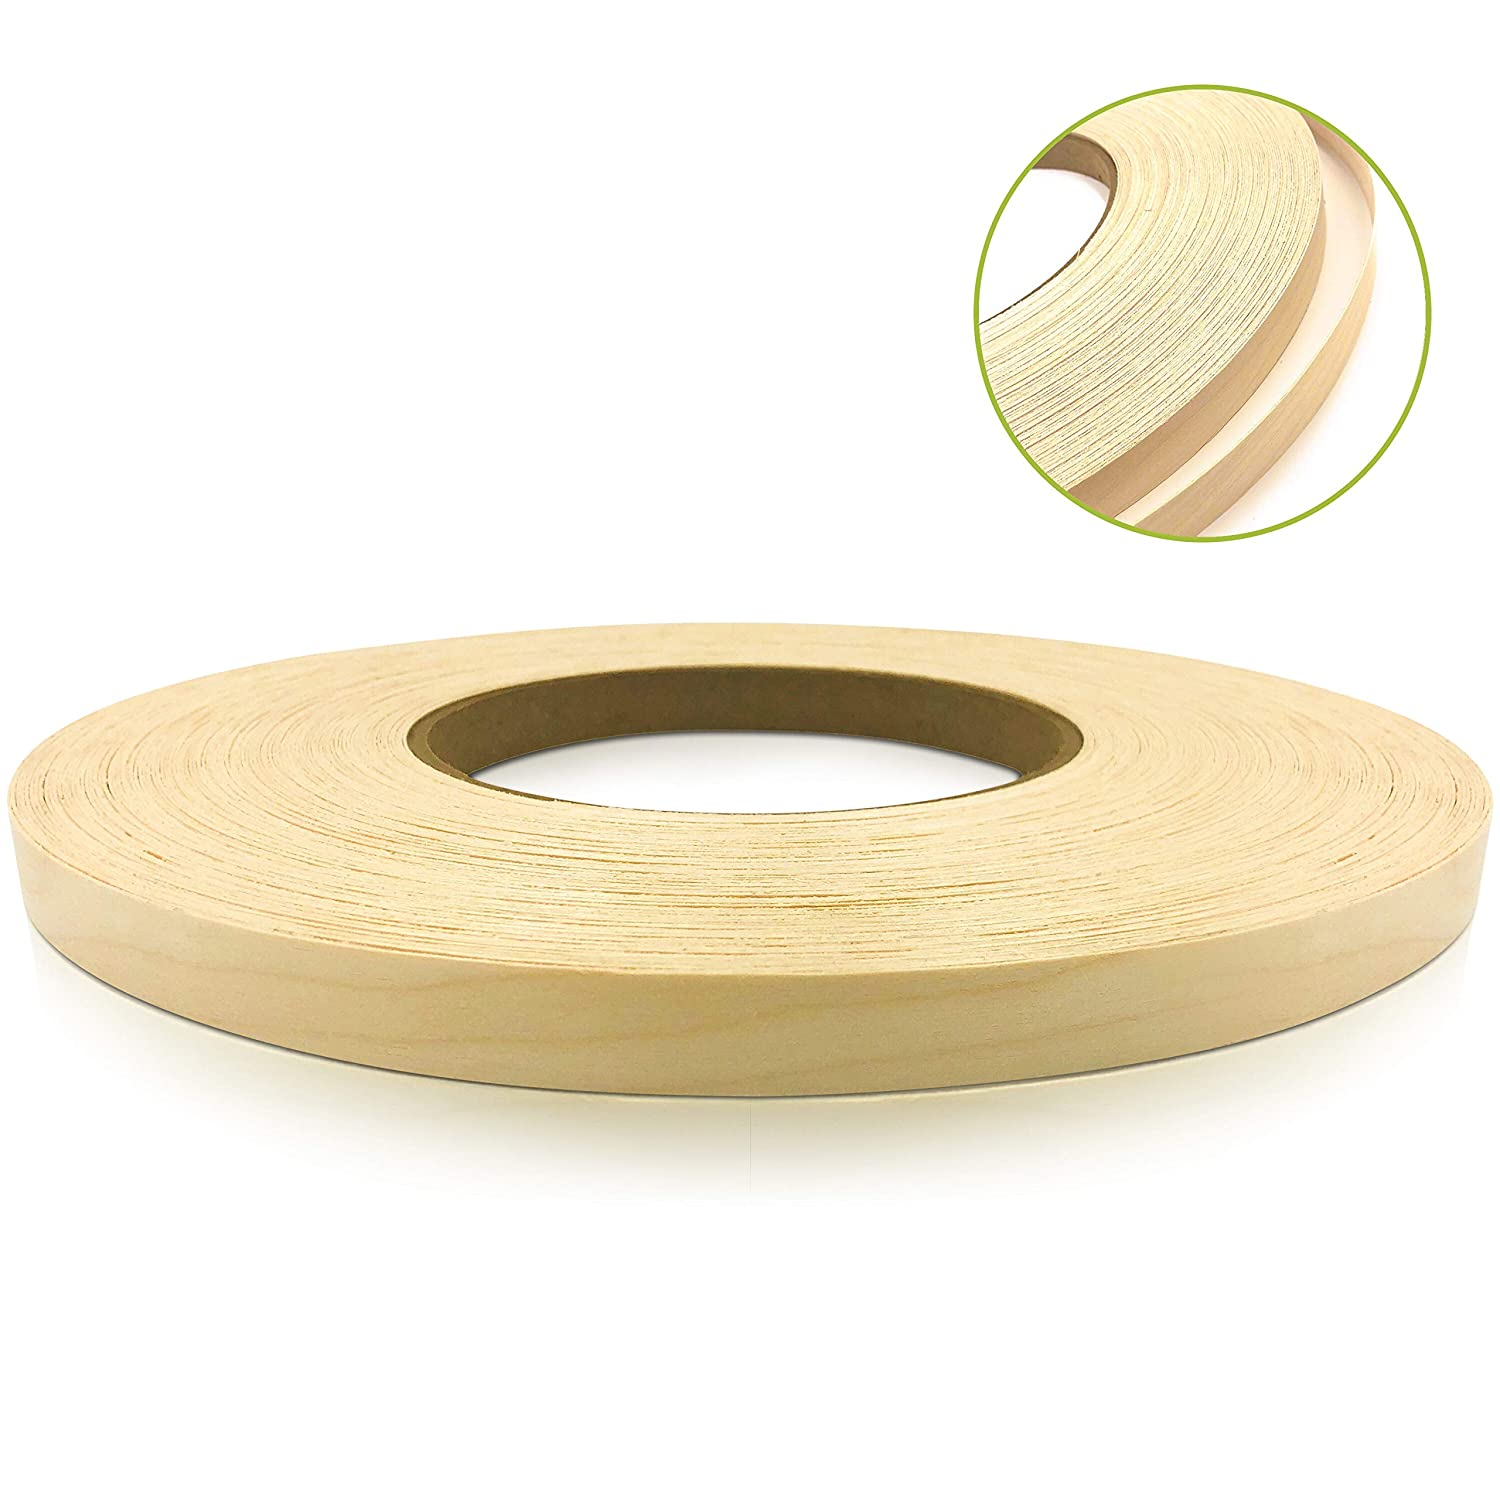 Birch 1/2 X 250' Roll Preglued, Wood Veneer Edge Banding, Iron on with Hot Melt Adhesive, Flexible Wood Tape Sanded to Perfection. Easy Application Wood Edging, Made in USA. Edge Supply